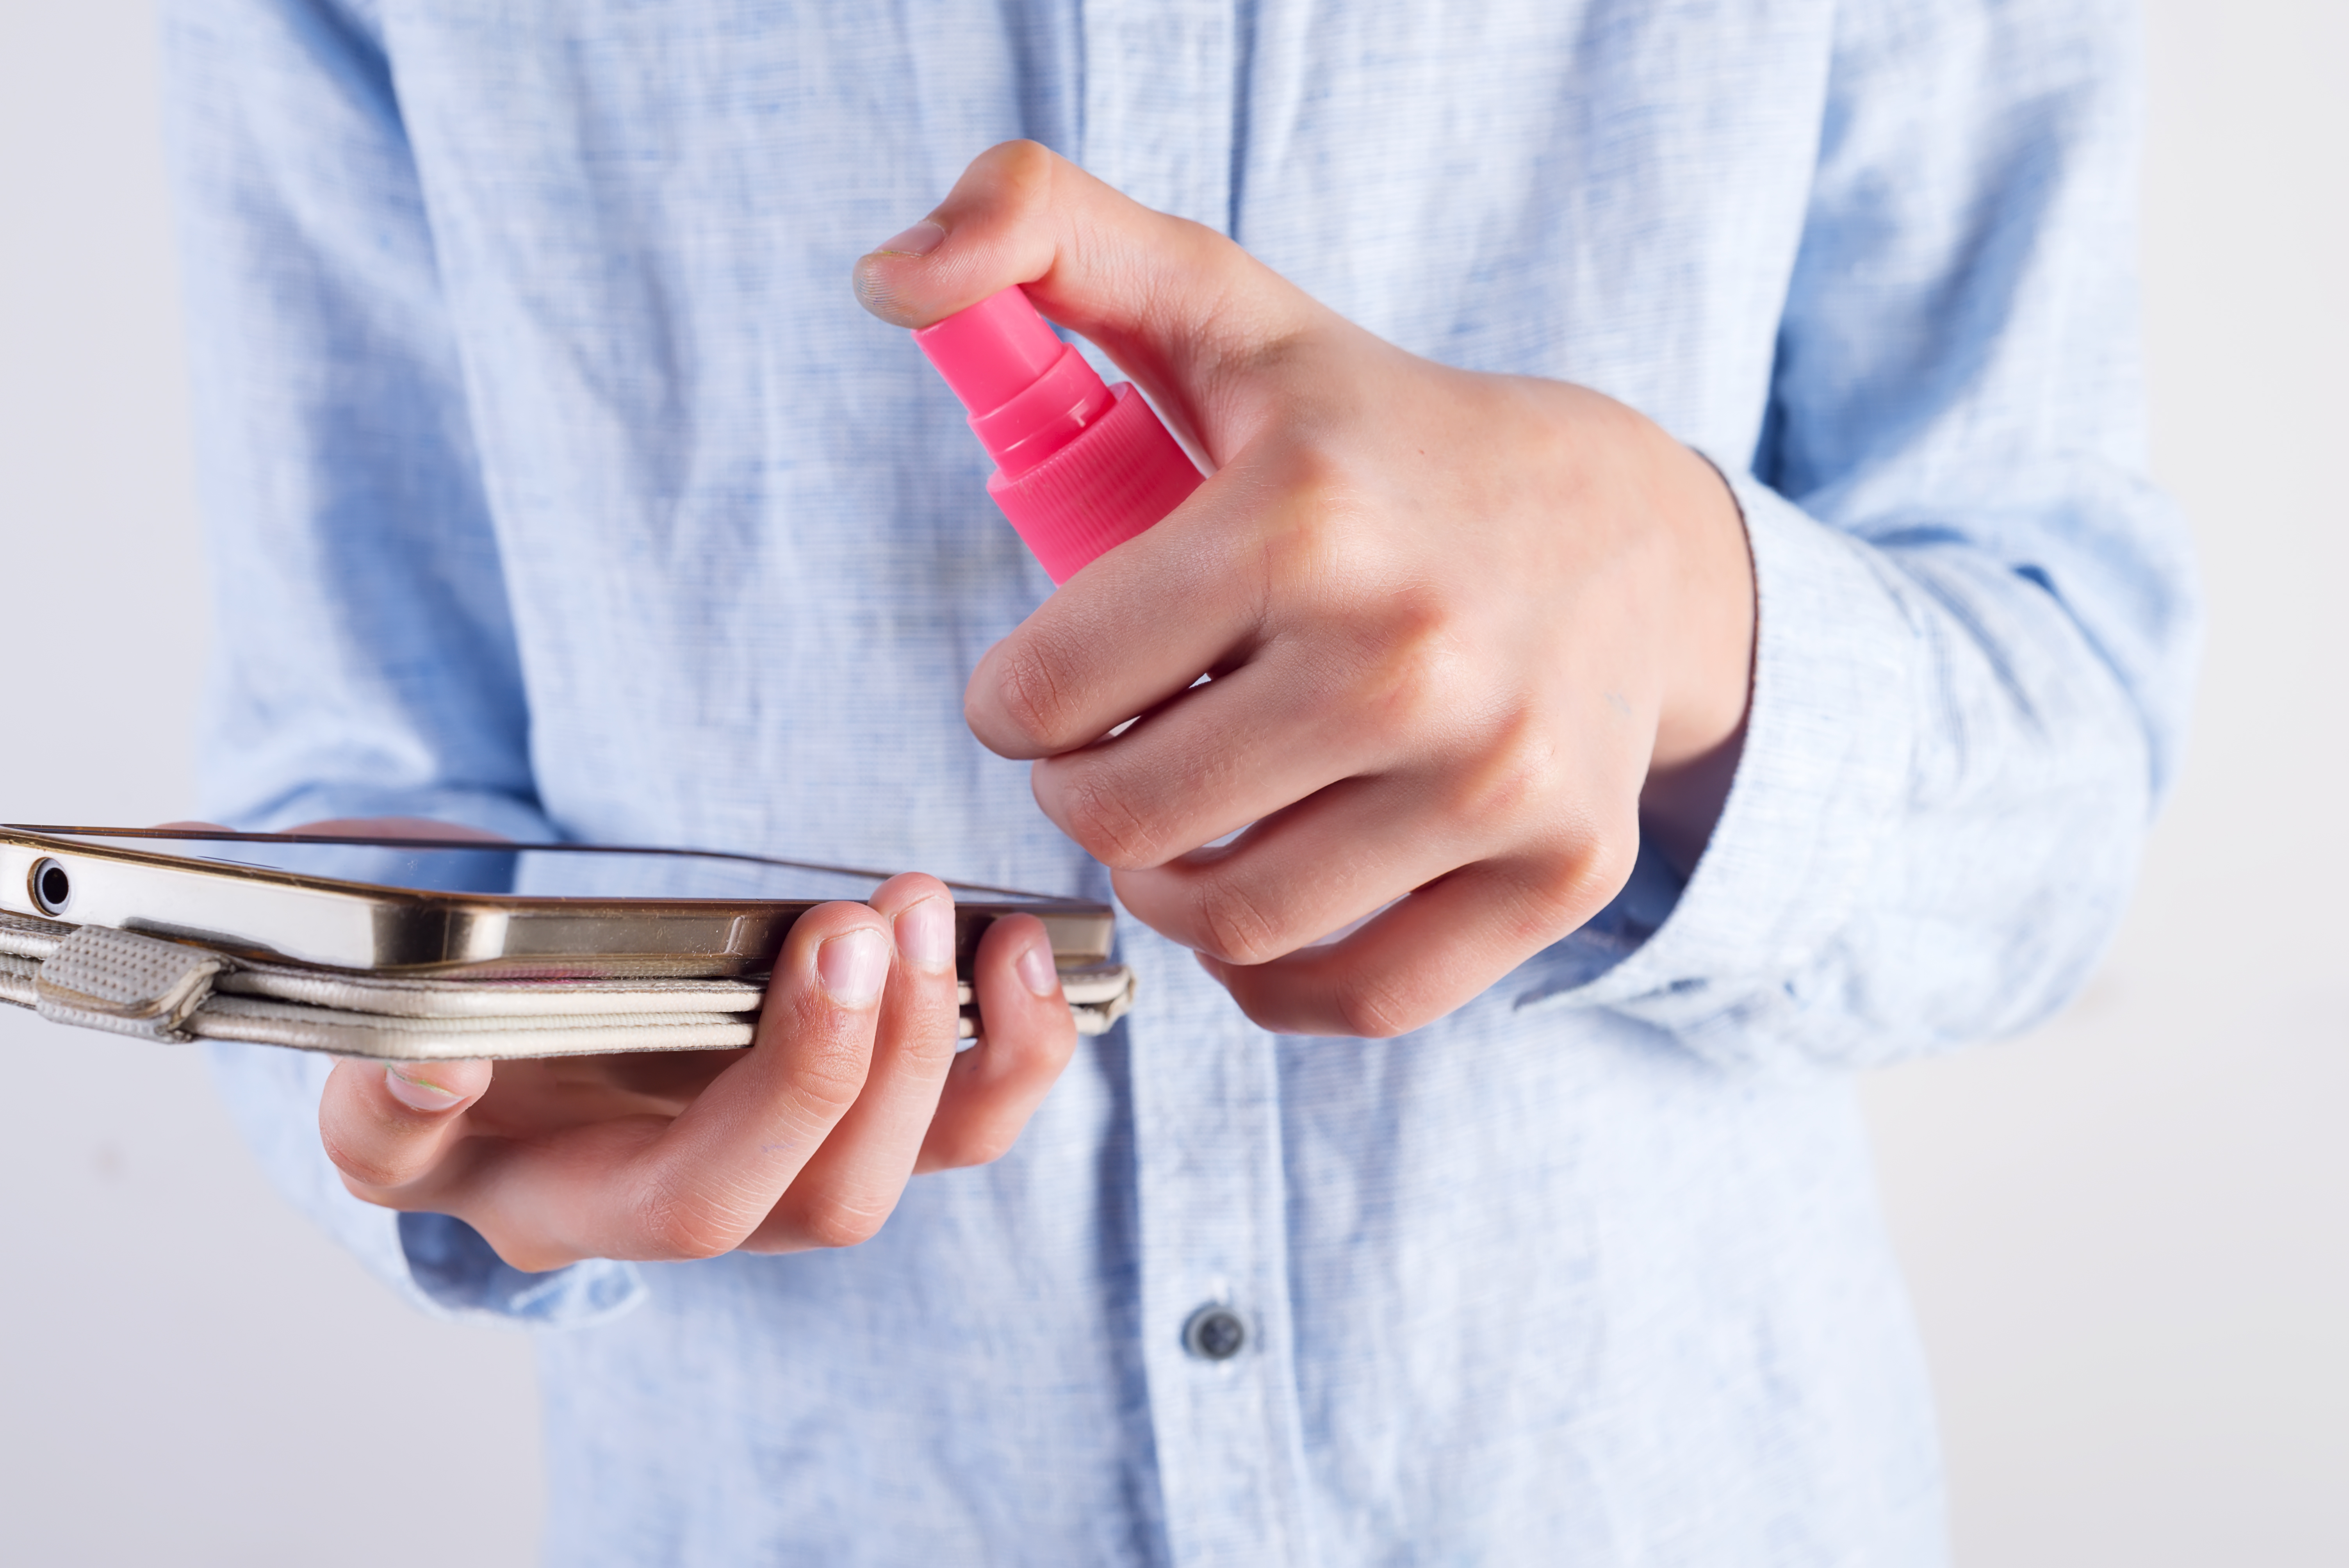 boy-in-a-pastel-blue-shirt-is-cleaning-his-phone-o-MKBRFEY